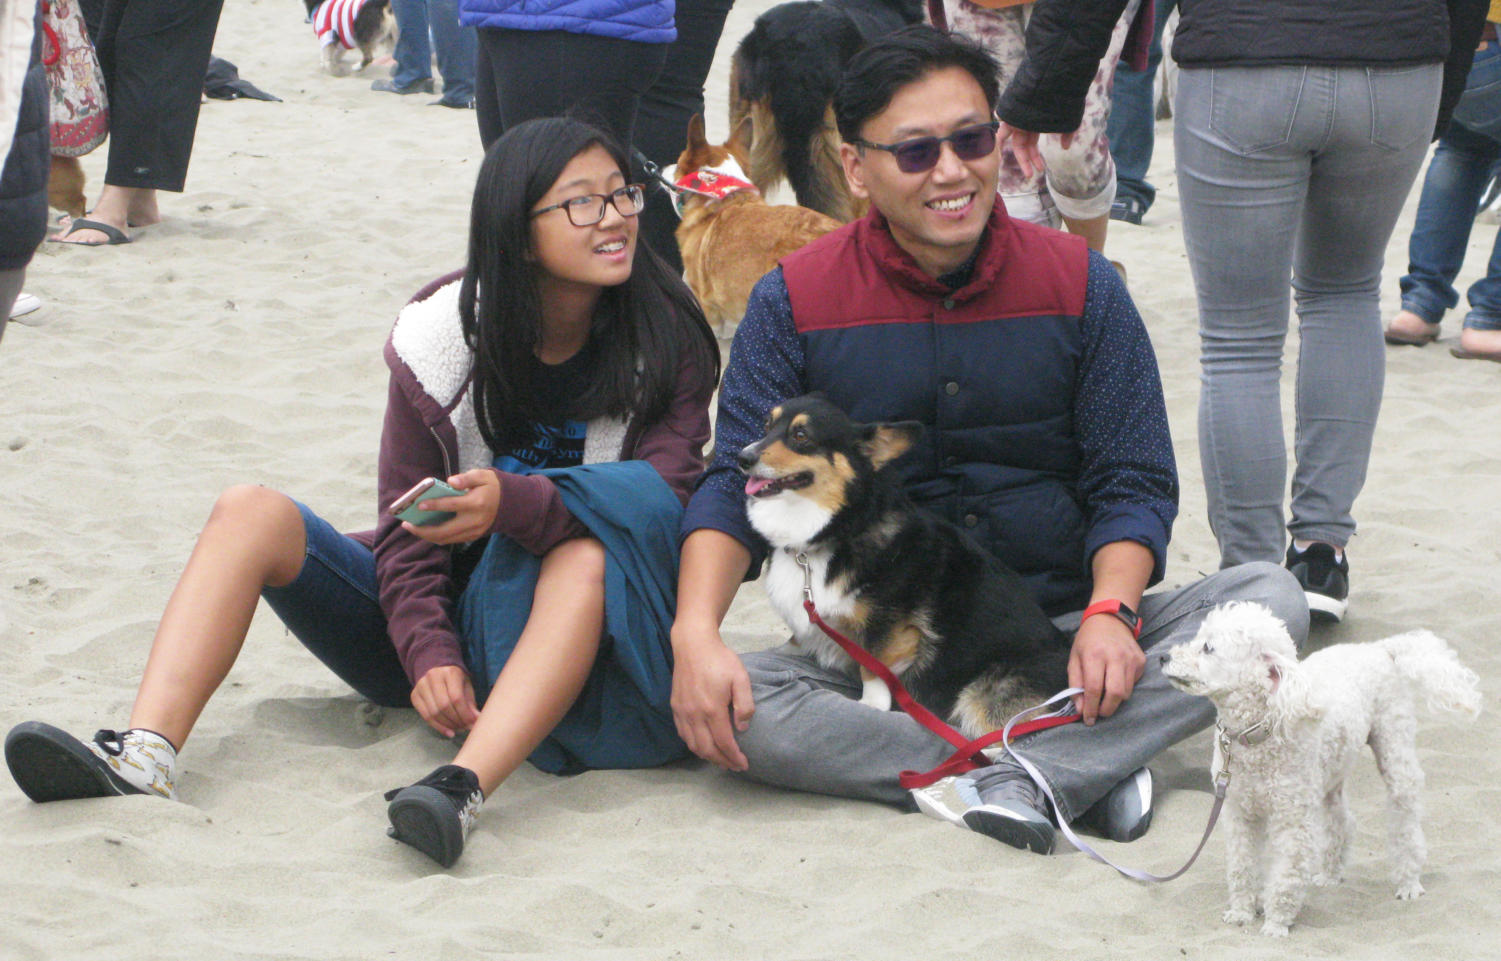 A+father+and+daughter+watch+a+corgi+sprinting+through+a+crowd+with+the+company+of+their+two+dogs.